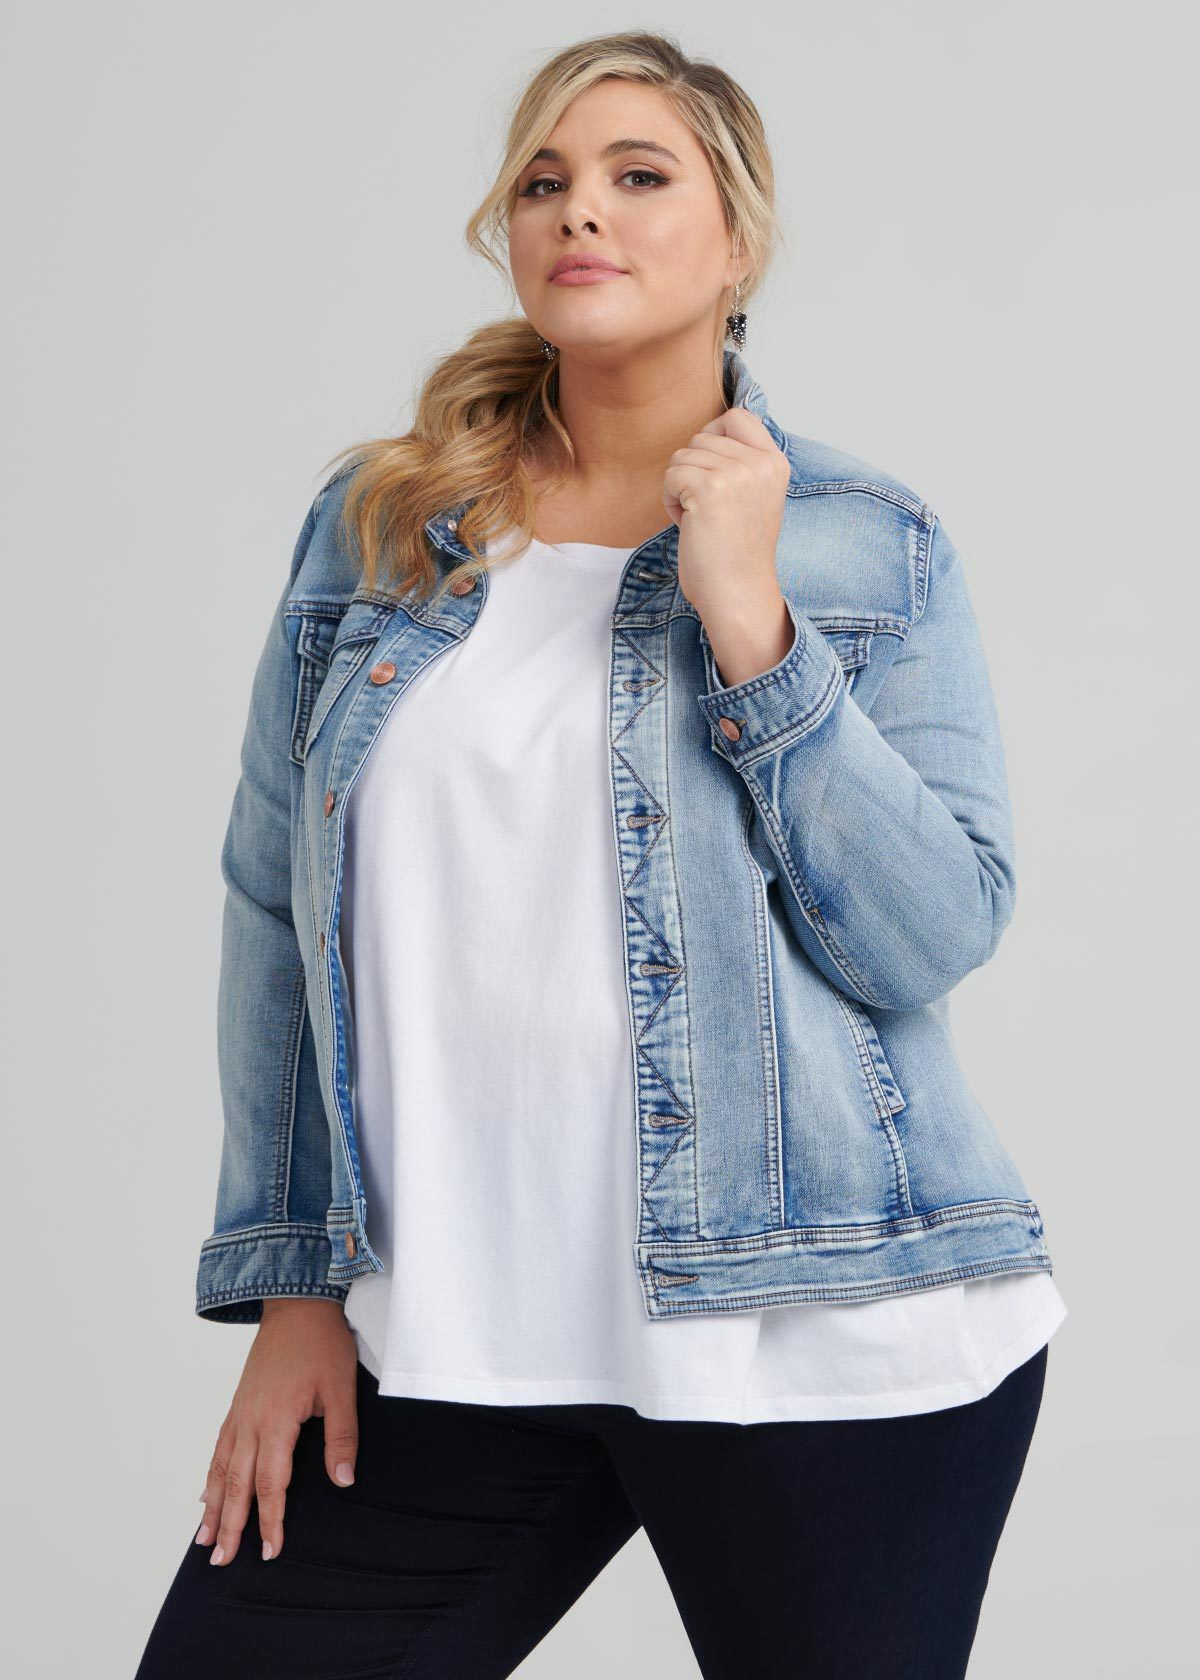 Where to buy jeans when you're short and plus size